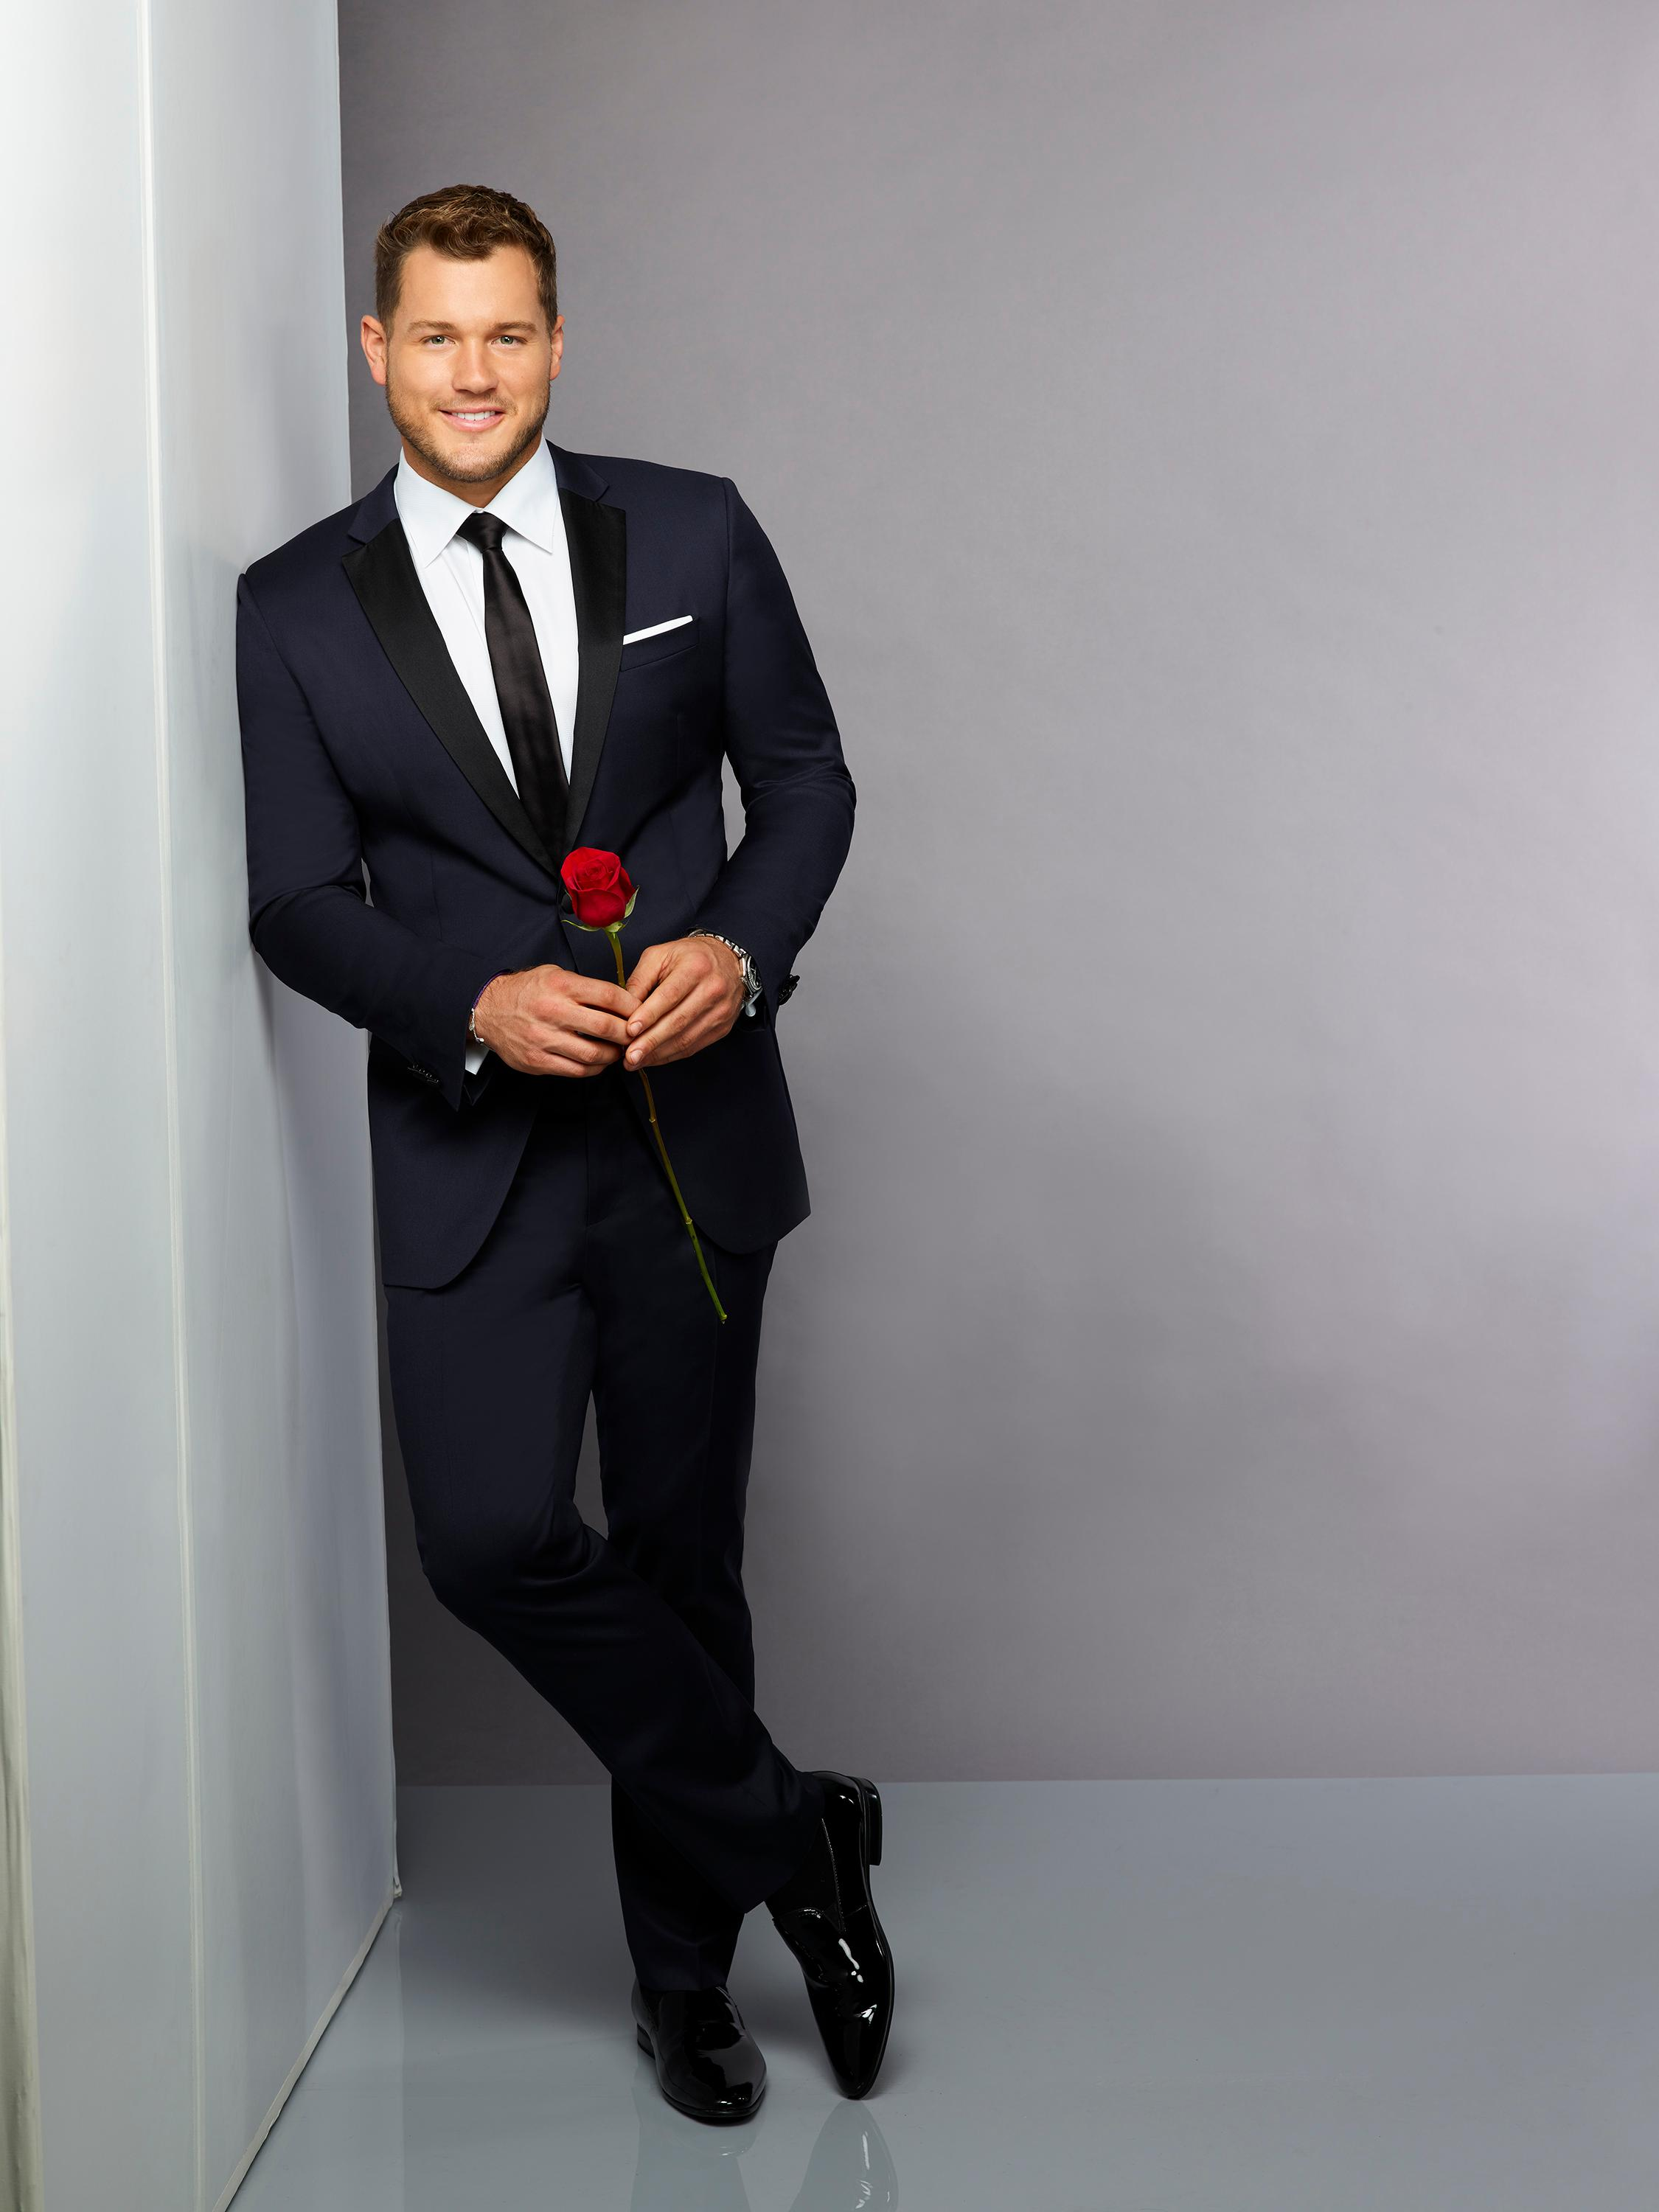 It's been a hot minute so first let's catch you up on who our next bachelor is, and what he's looking for! (Image: ABC/Craig Sjodin)